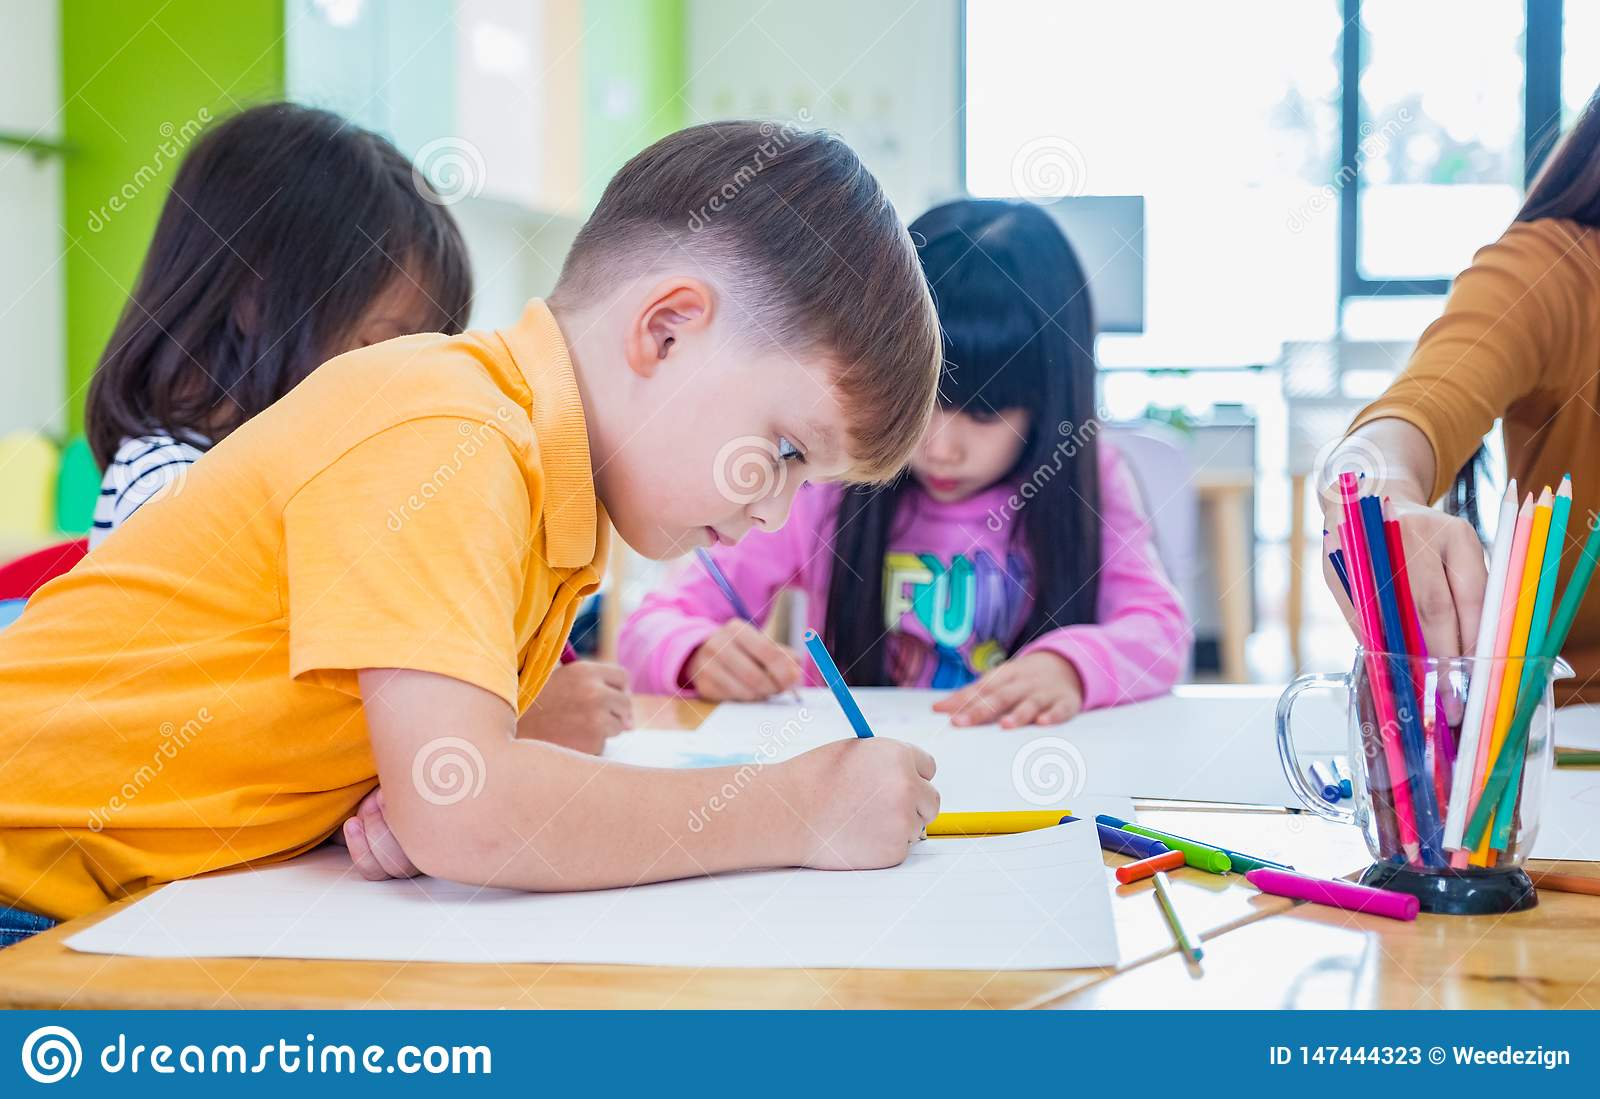 Caucasian boy ethnicity kid smiling white learning in classroom with friends and teacher  in kindergarten school, education